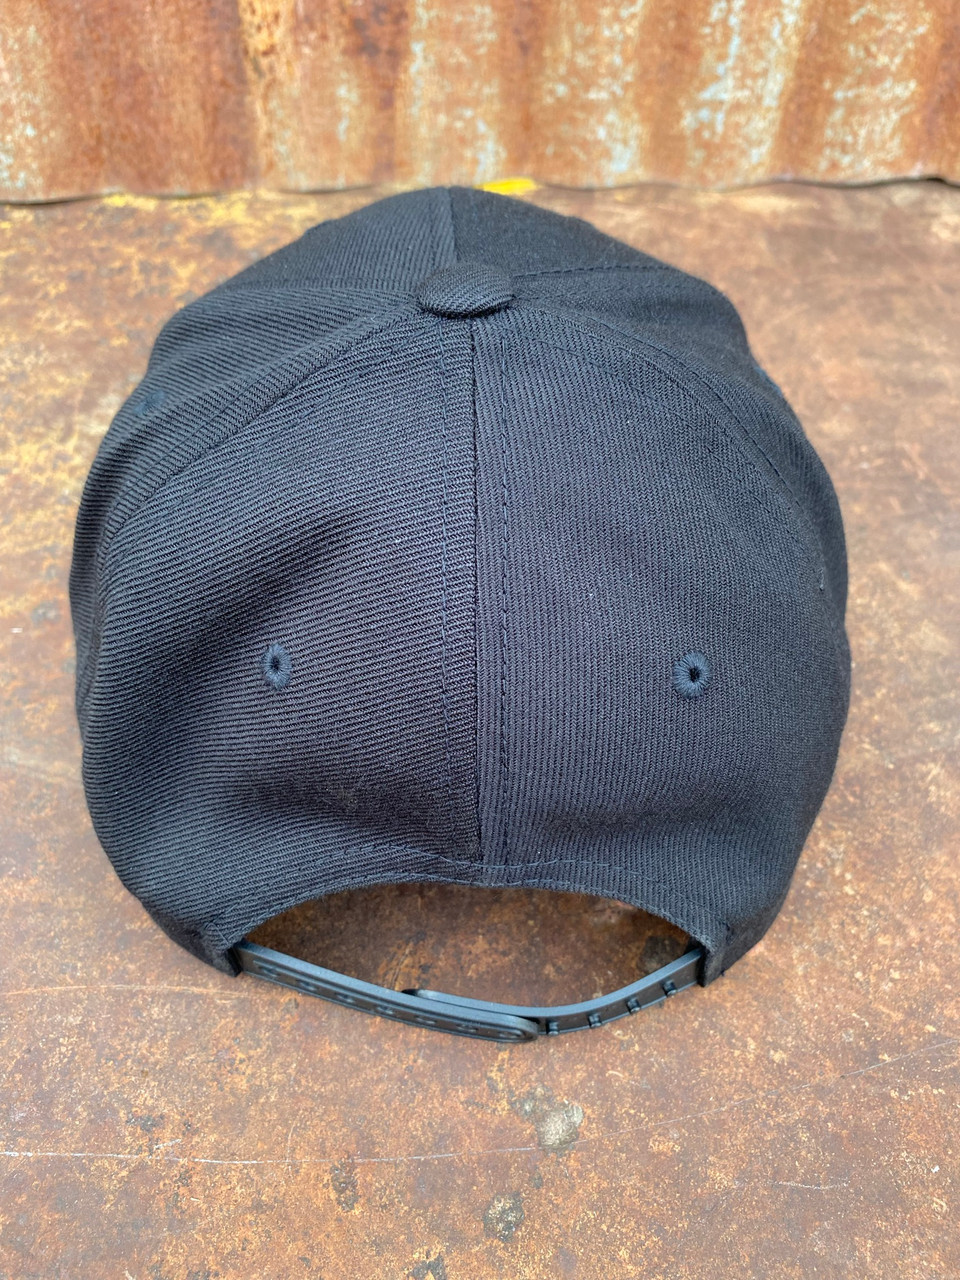 Top/Back View snapback